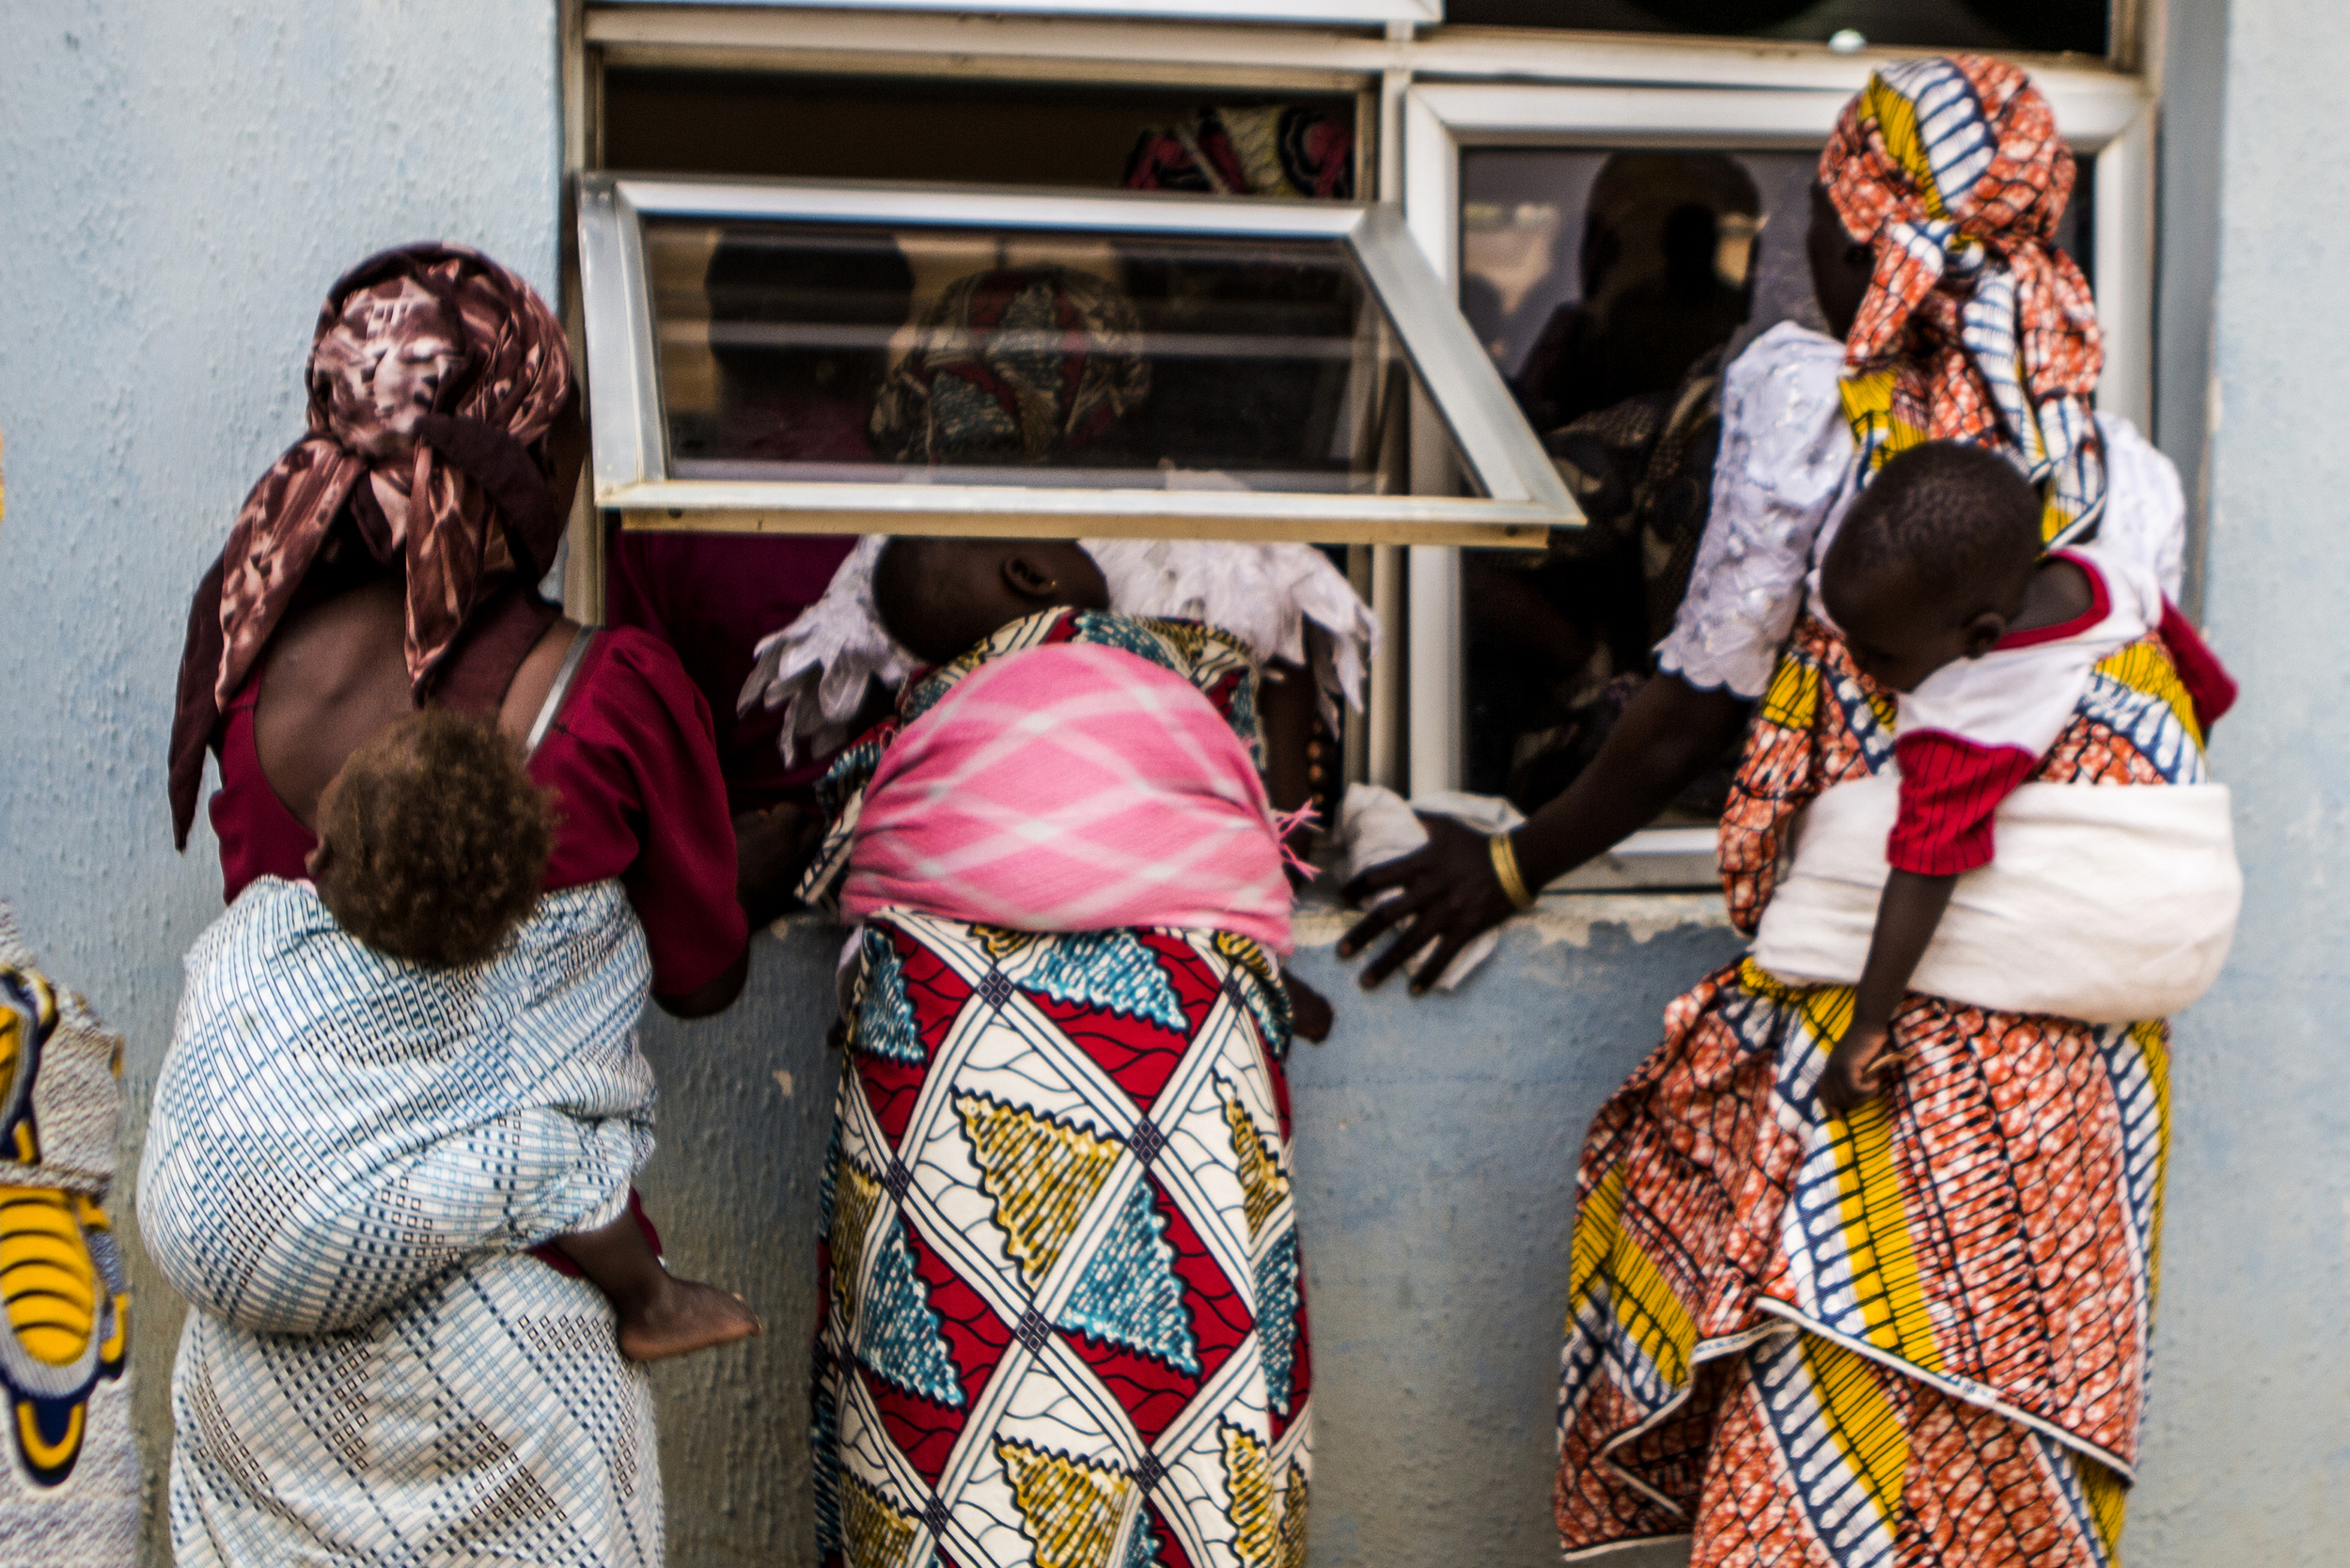 Yola, Nigeria. March 1 2015. Three women who have fled Boko Haram violence look through a window at a local church as aid groups distribute food donations. Many woman fled the militant's attacks while pregnant, and now are taking care of their small children whilst living in informal camps or with relatives.